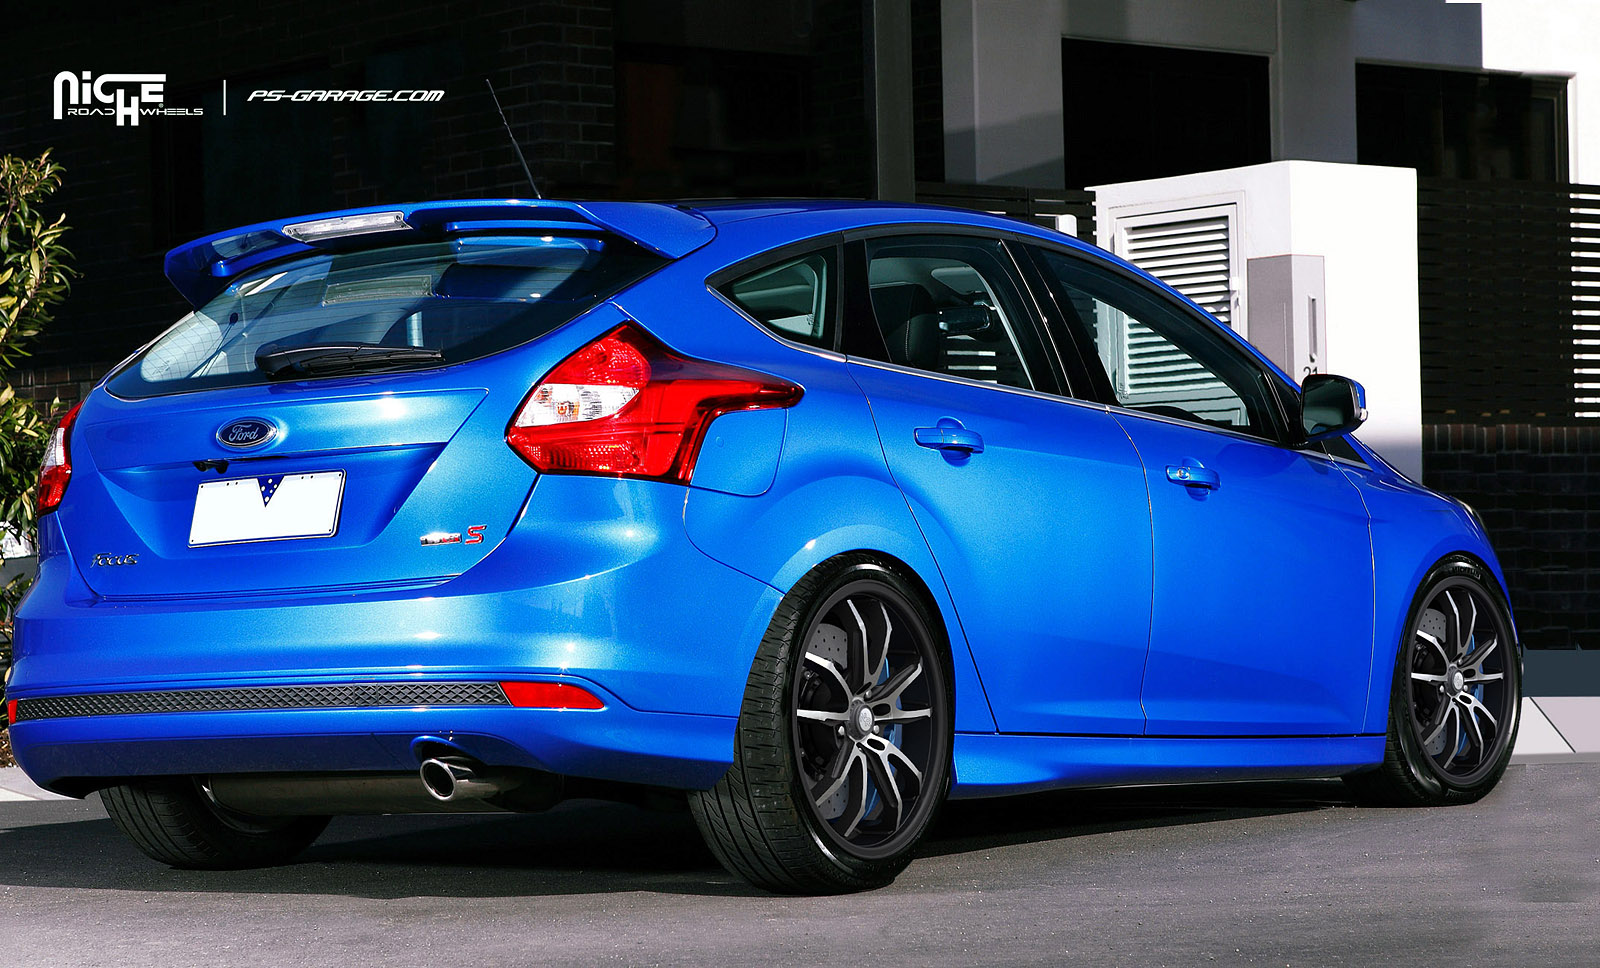 2014 Ford Focus aftermarket wheels